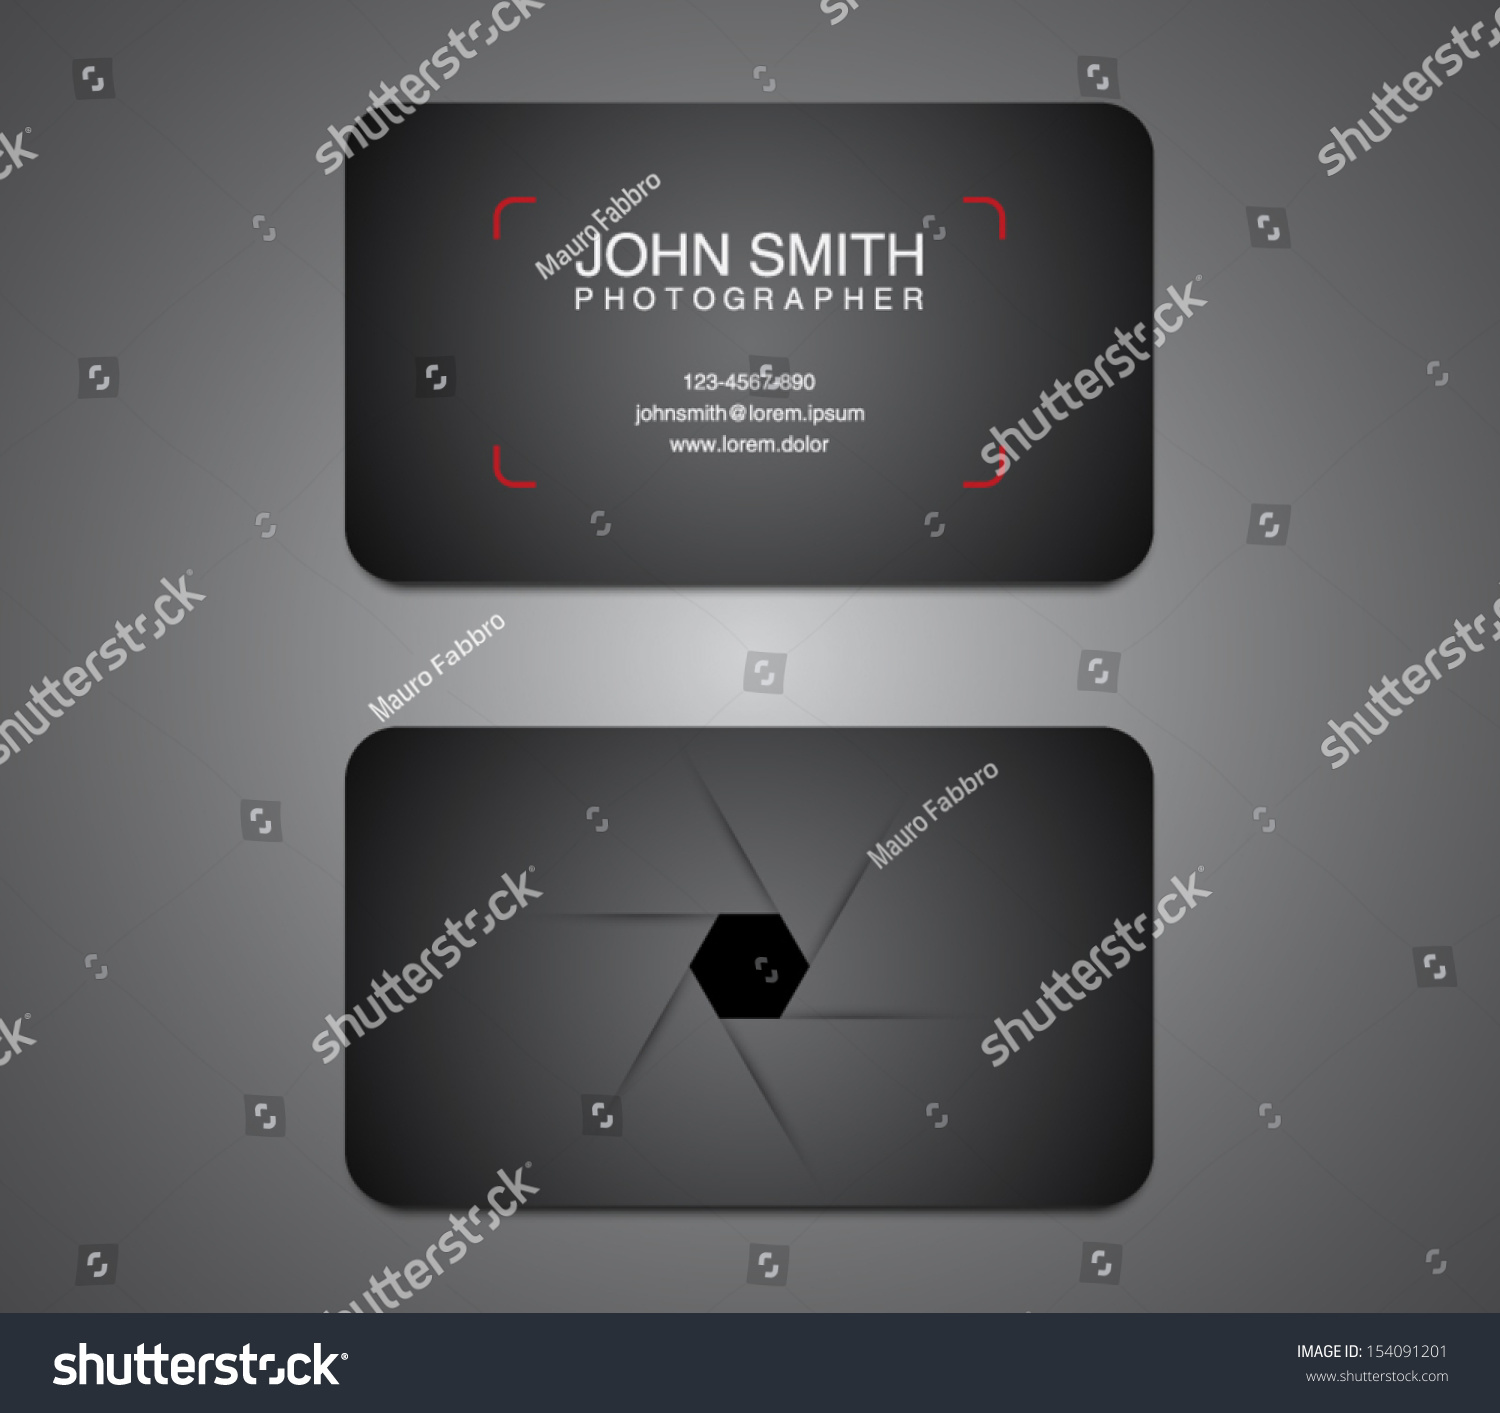 Photographer business card template photography photo stock vector photographer business card template photography photo presentation logo logotype brand magicingreecefo Gallery